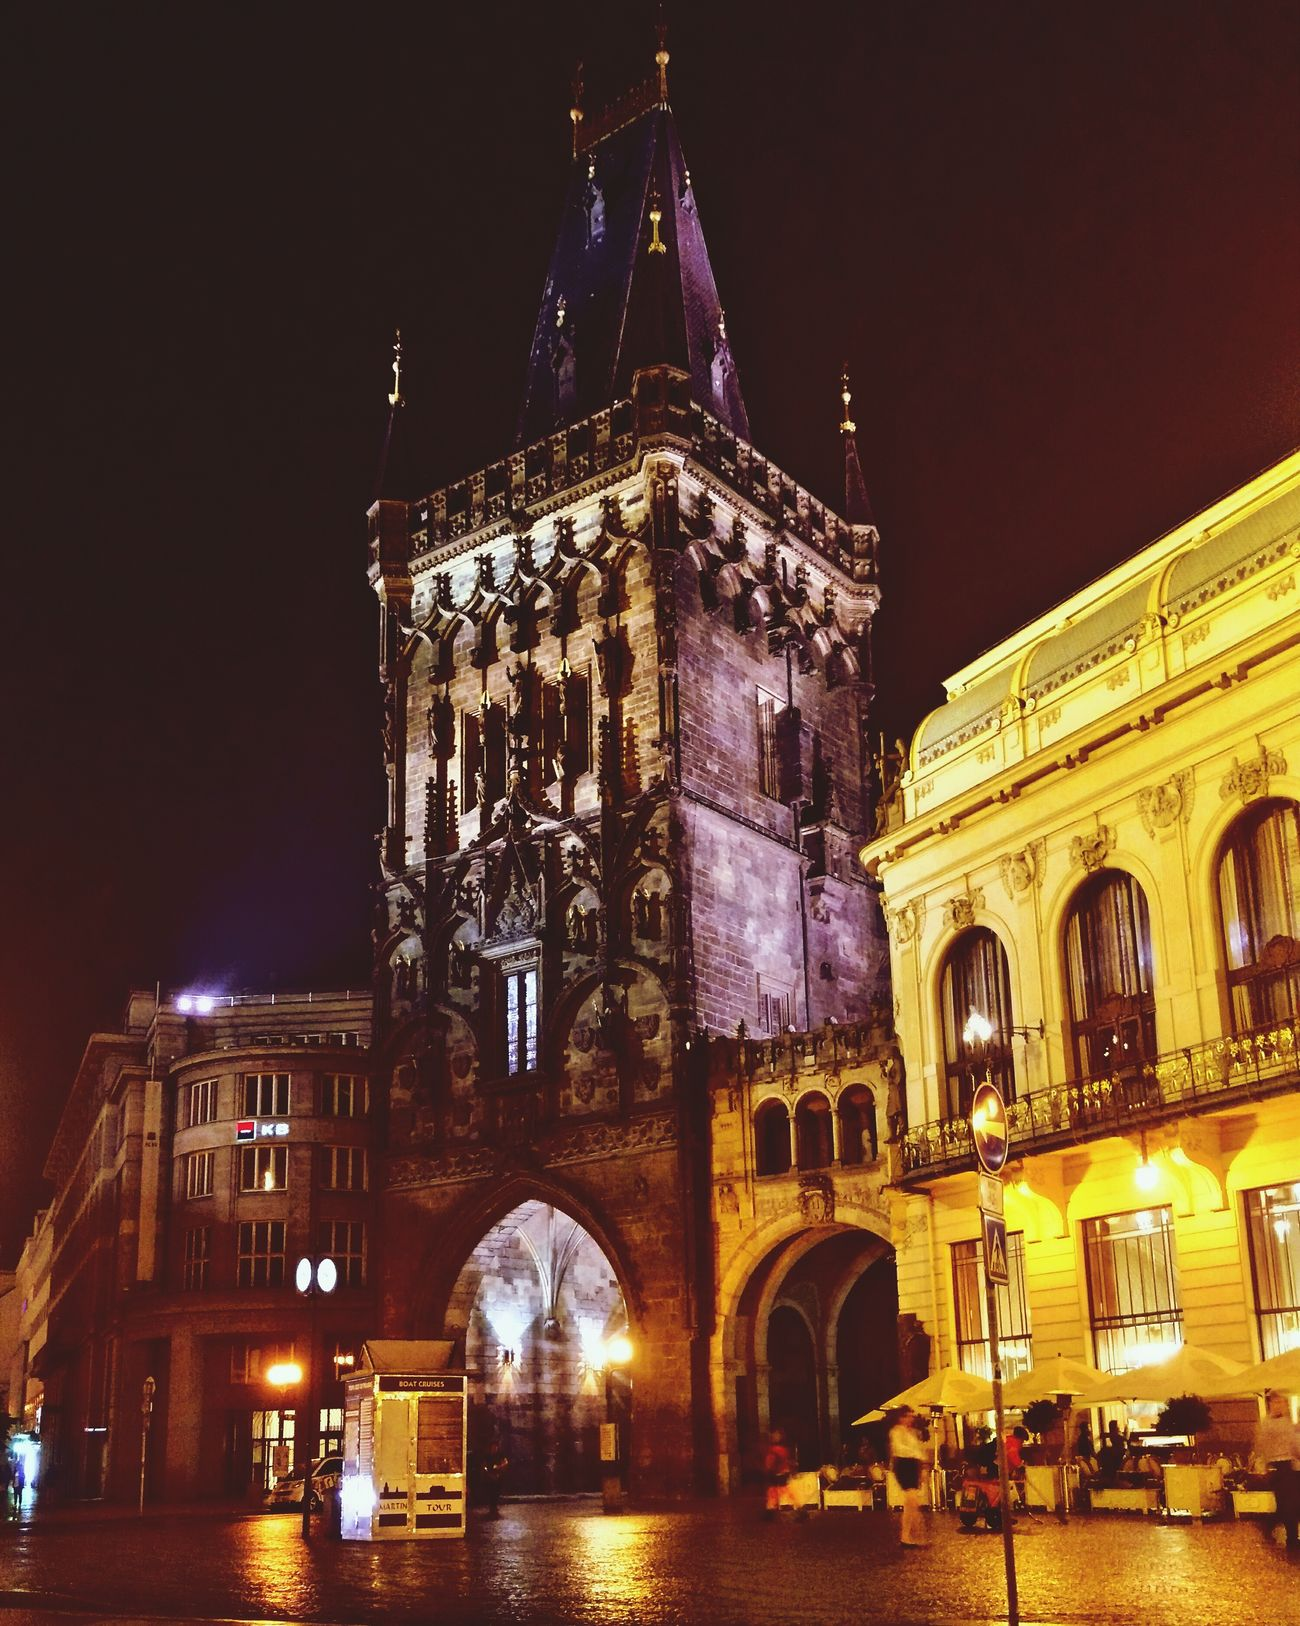 Chech Republic Prague♡ Hello World Nightlife Cities At Night Night View Nightphotography Taking Photos Kostel